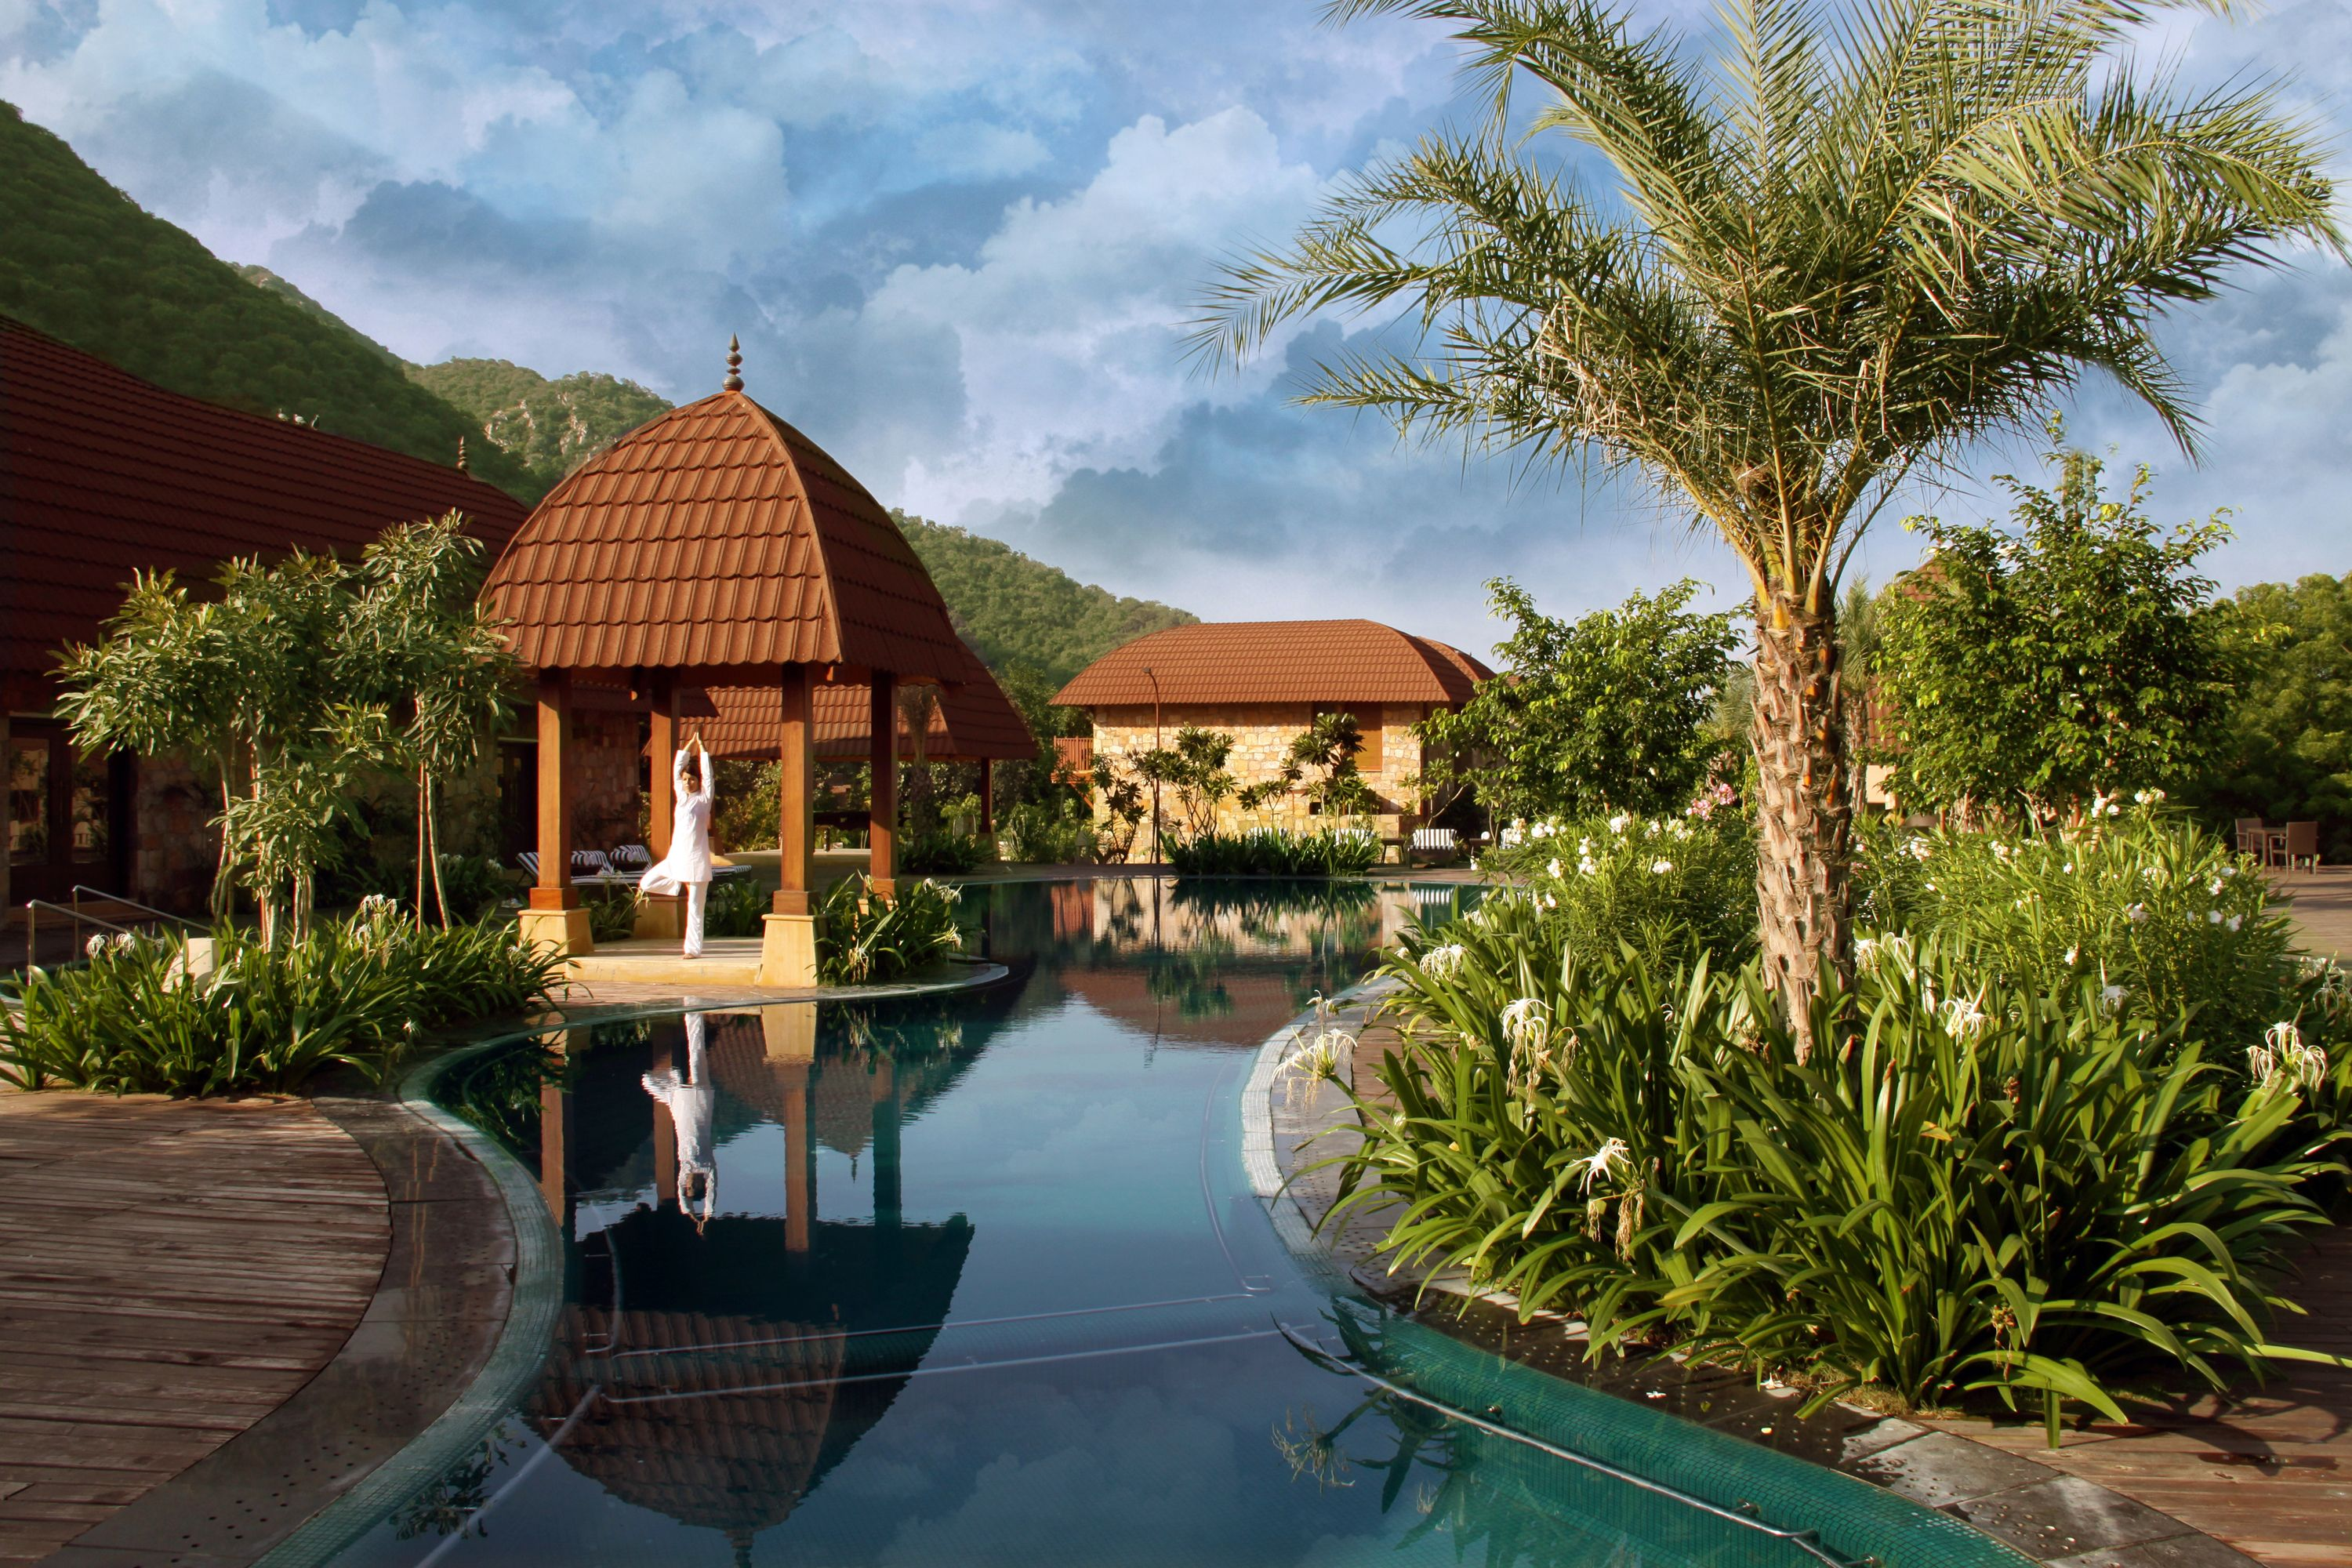 Awaken the morning with a #harmonious #yoga and in #luxurious brown tiled #ambiance beside the blue #calm water.